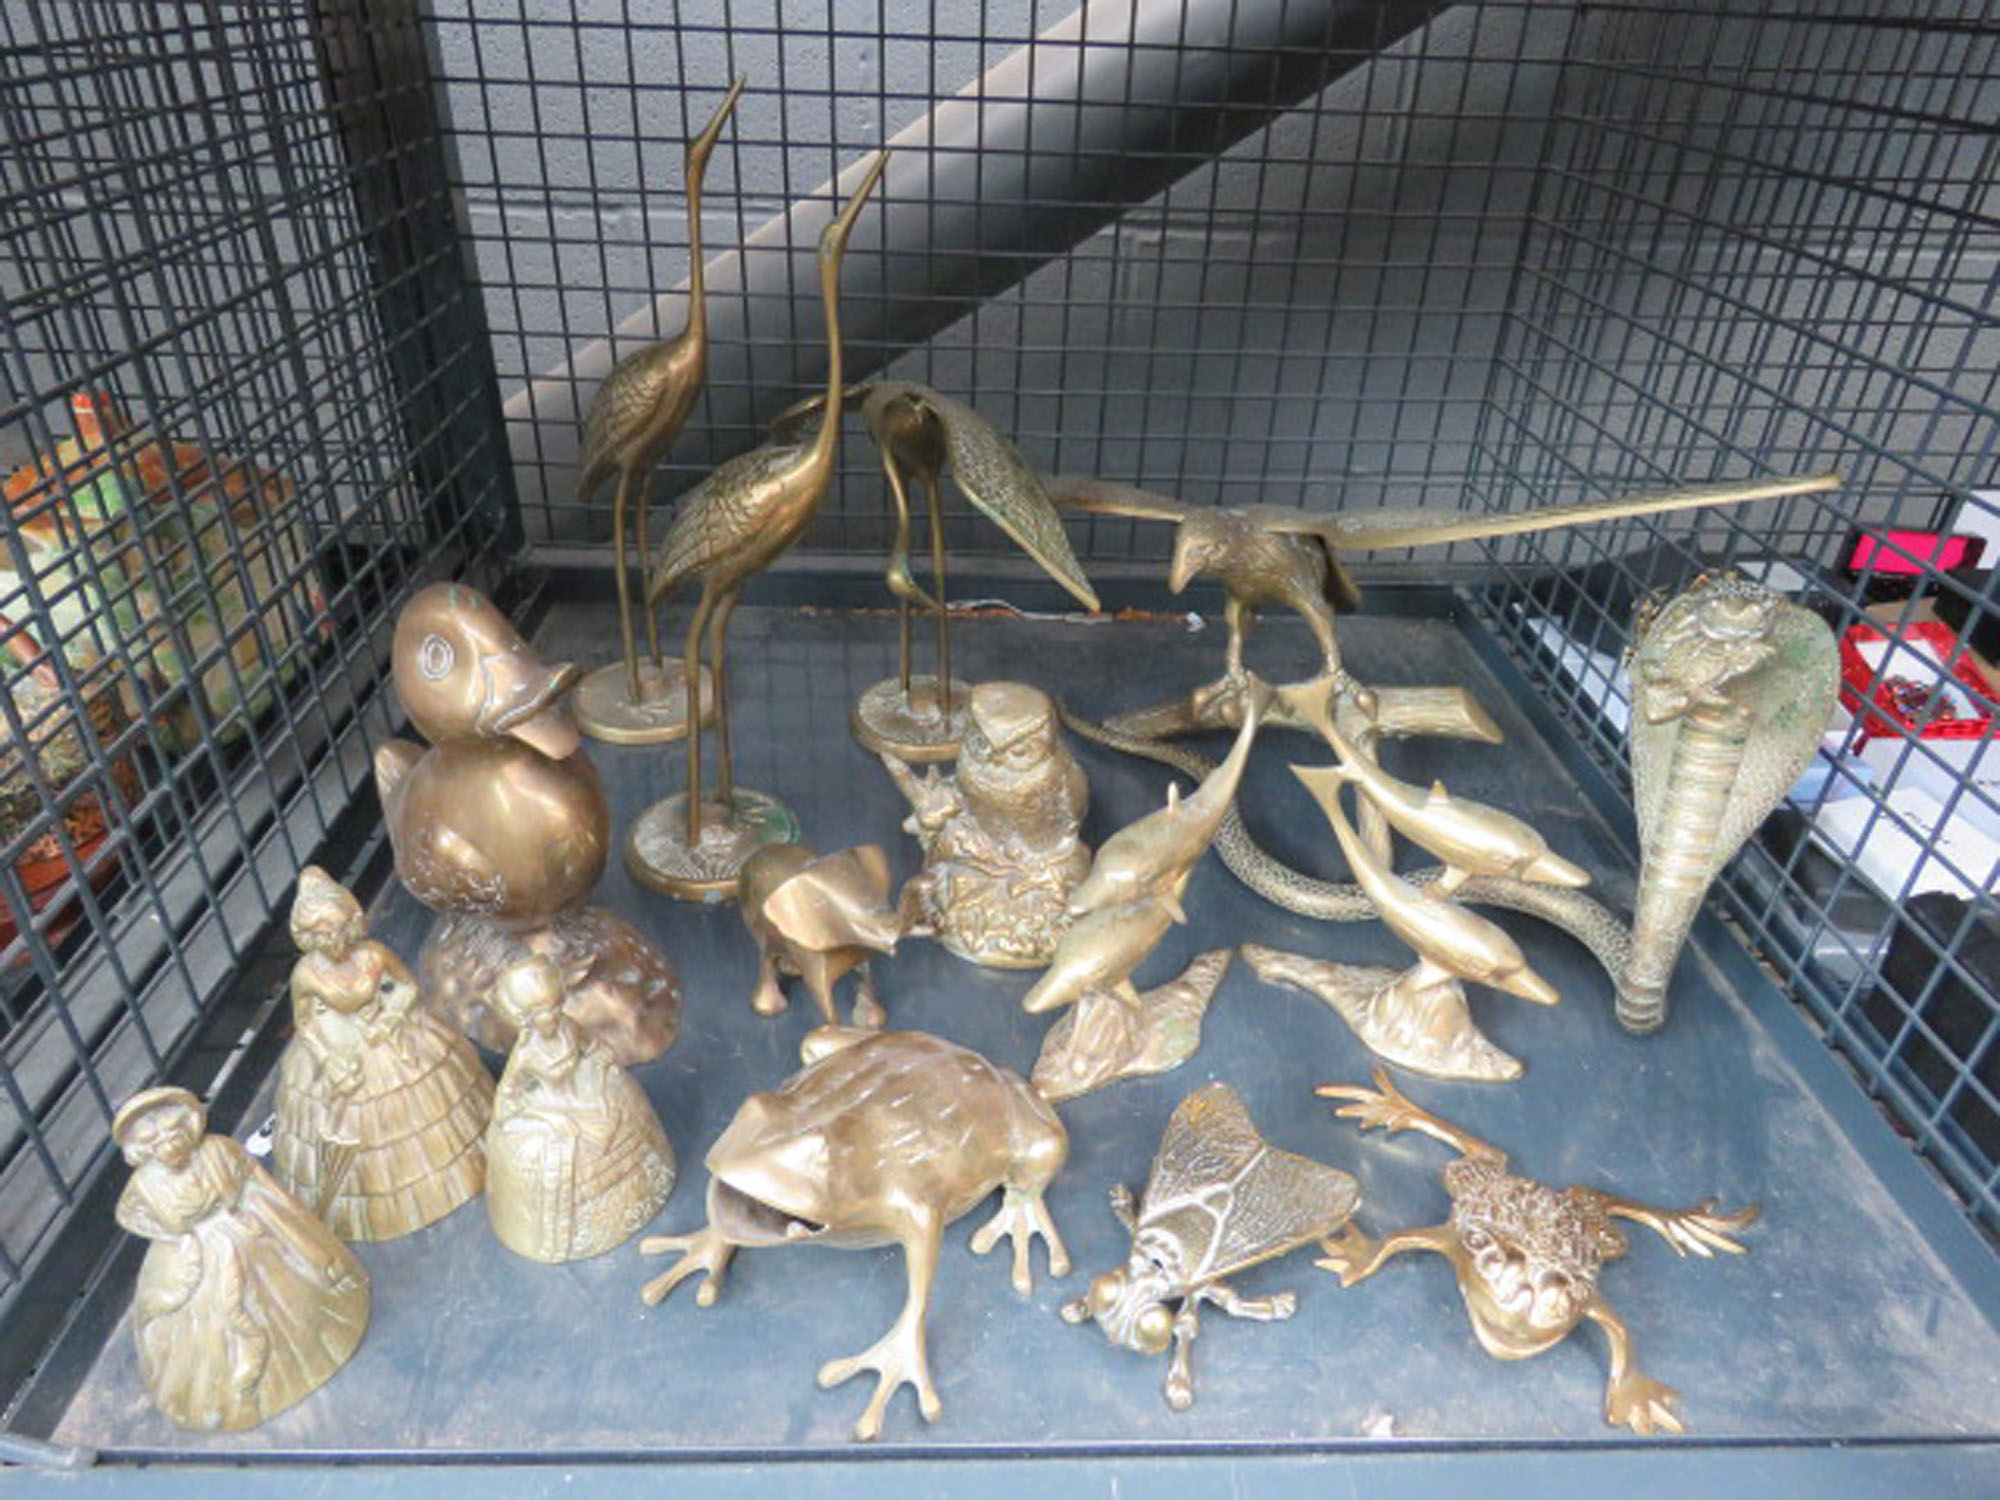 cage containing ornamental brass figures